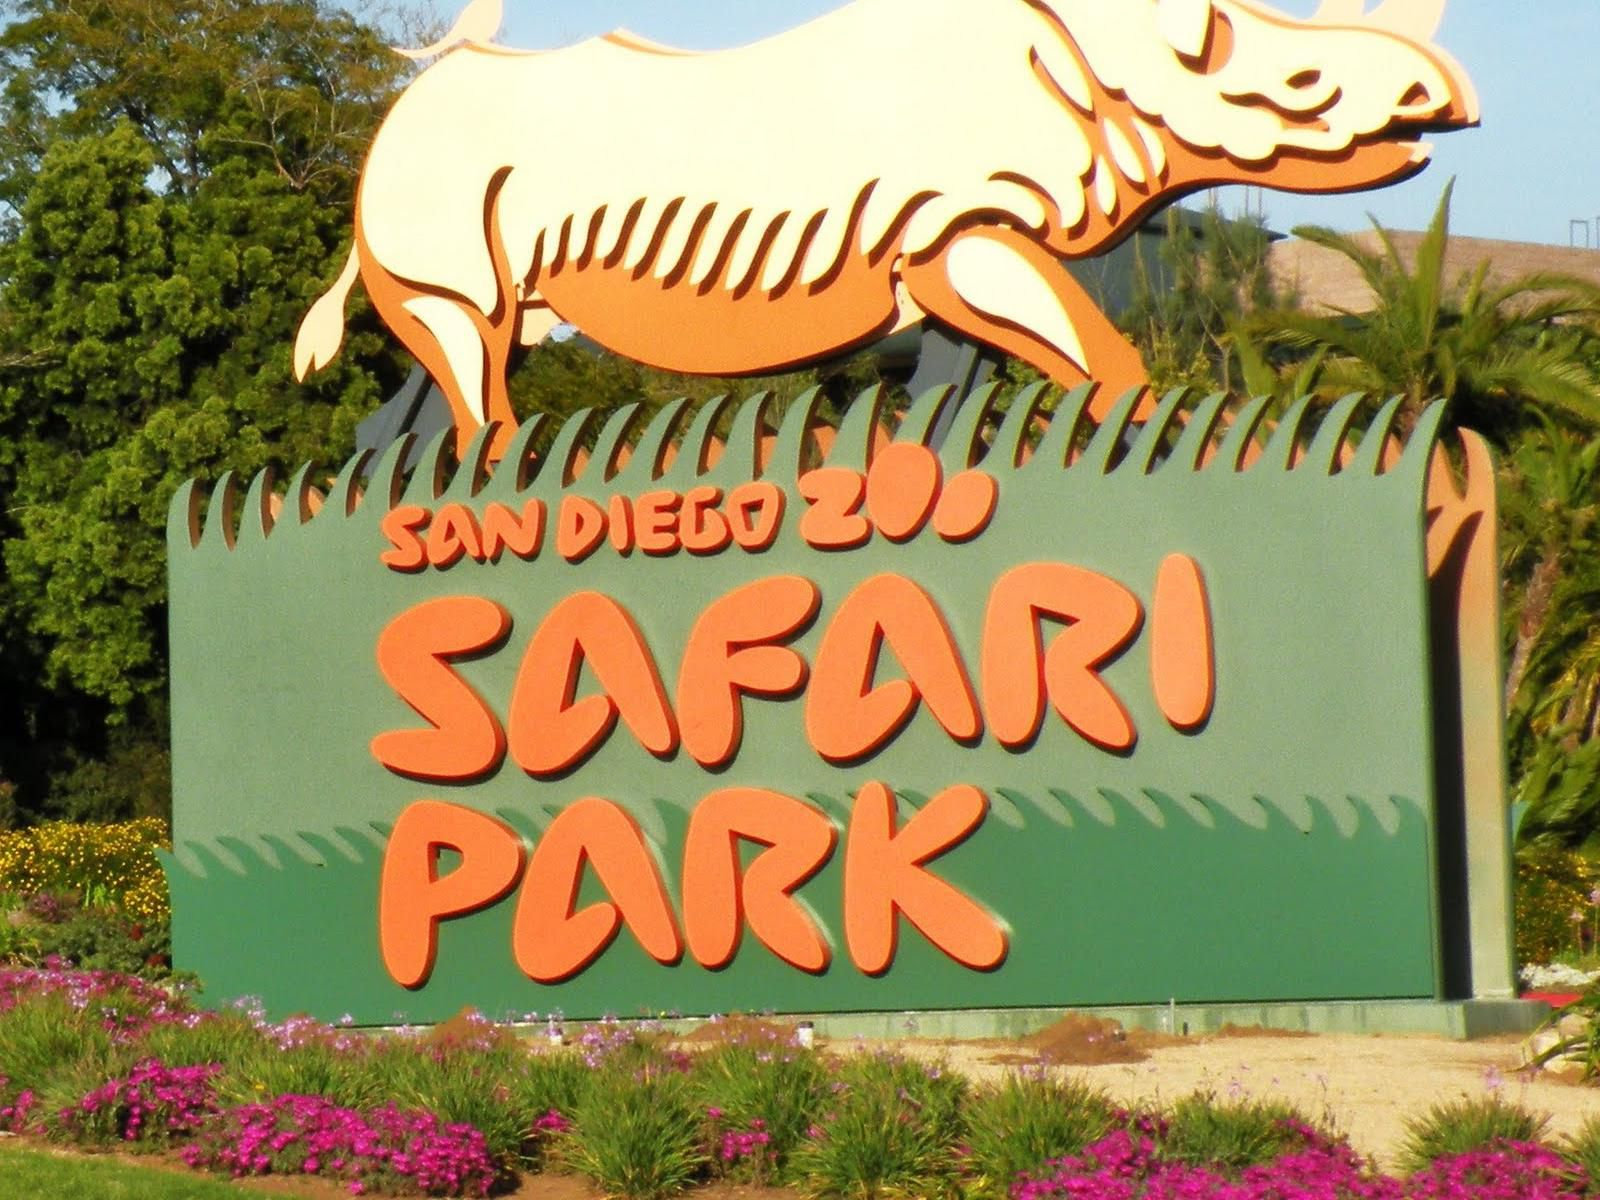 Hotel is located within 10 miles away to San Diego Safari Park.